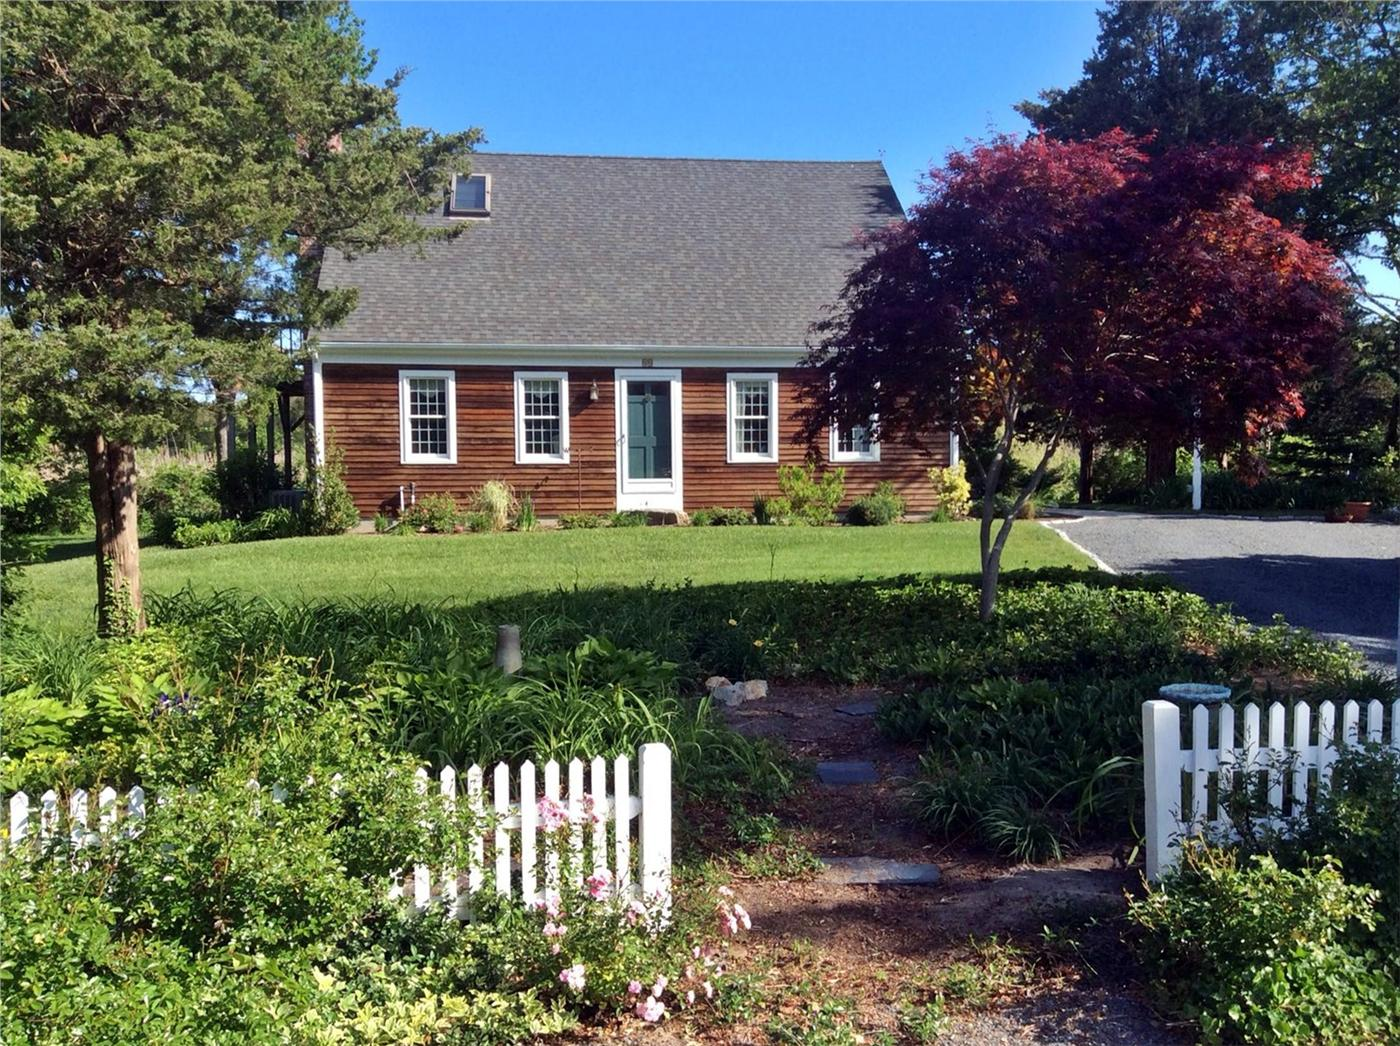 Dennis Vacation Rental Home In Cape Cod Ma 02638 Id 25458